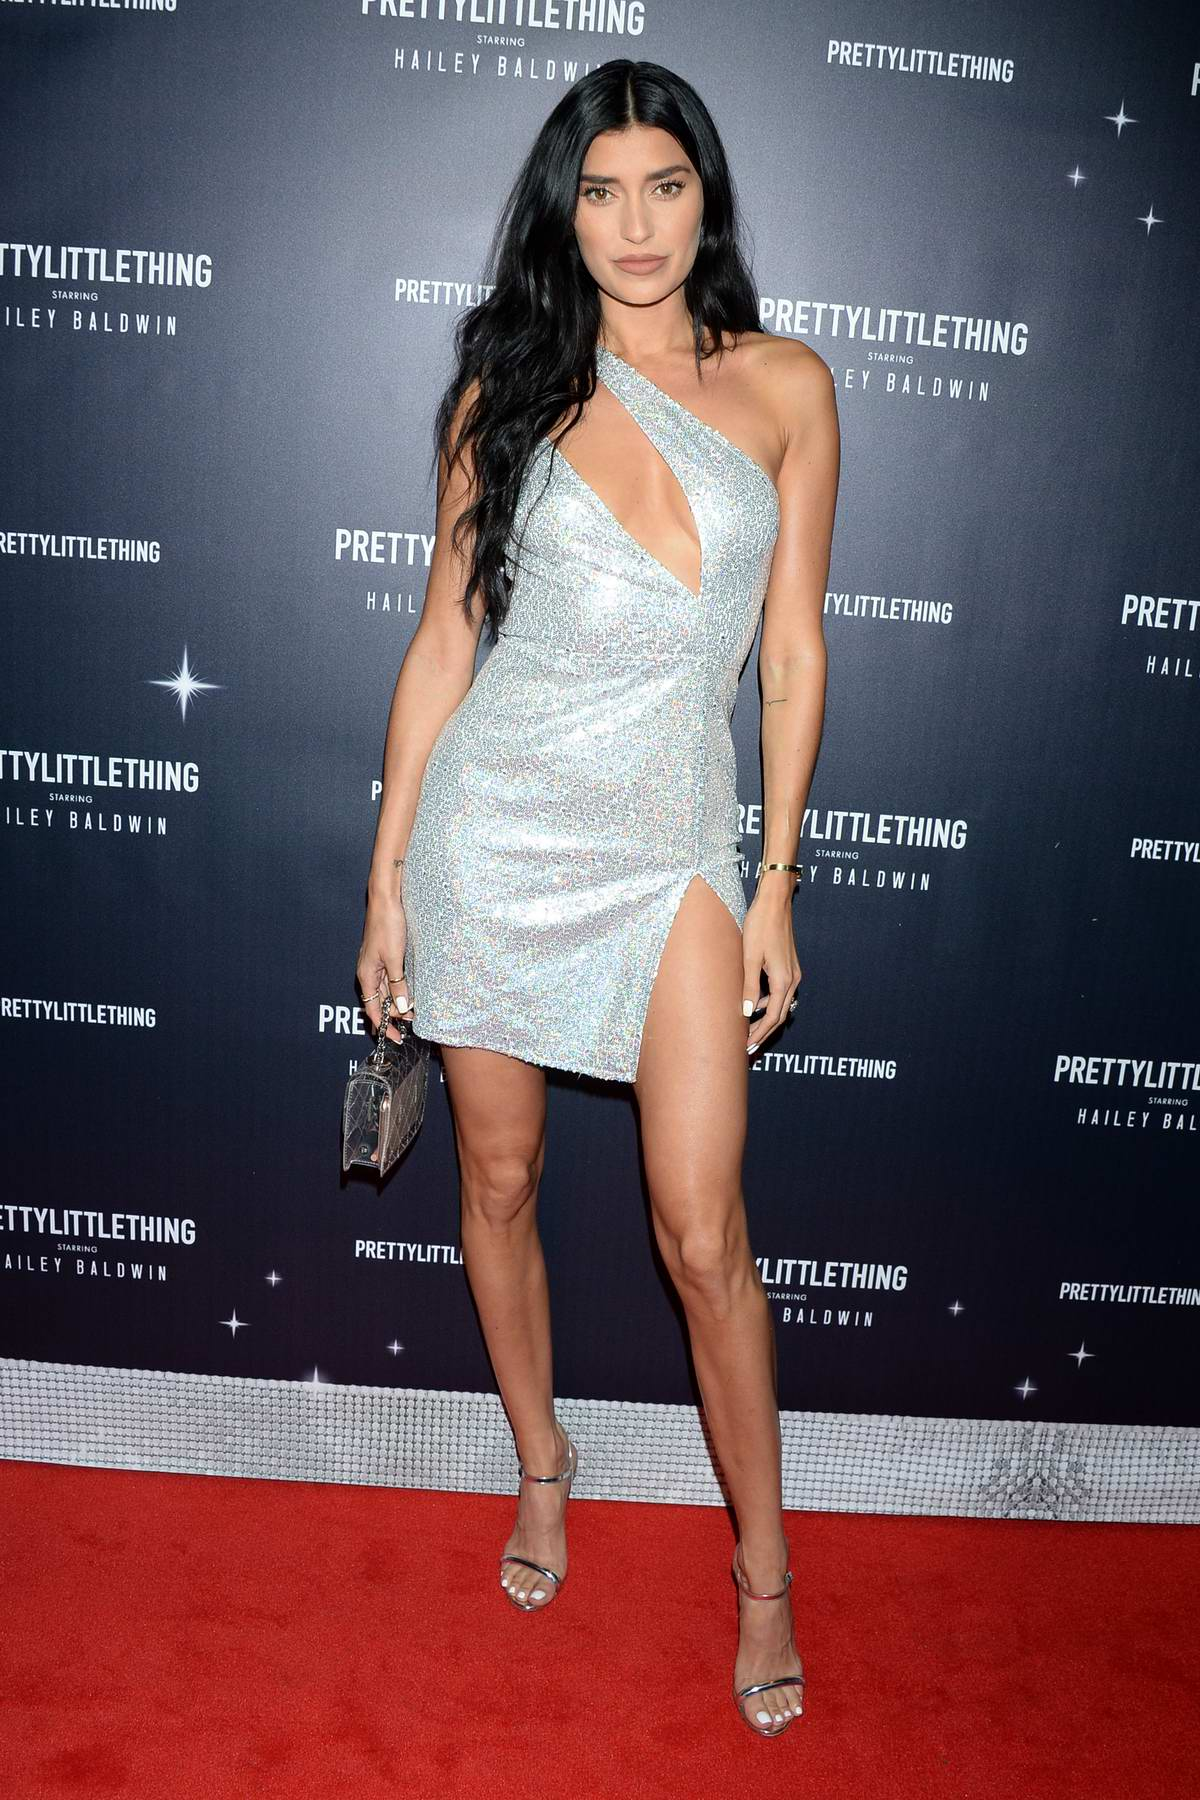 Nicole Williams attends PrettyLittleThing x Hailey Baldwin Event in Los Angeles